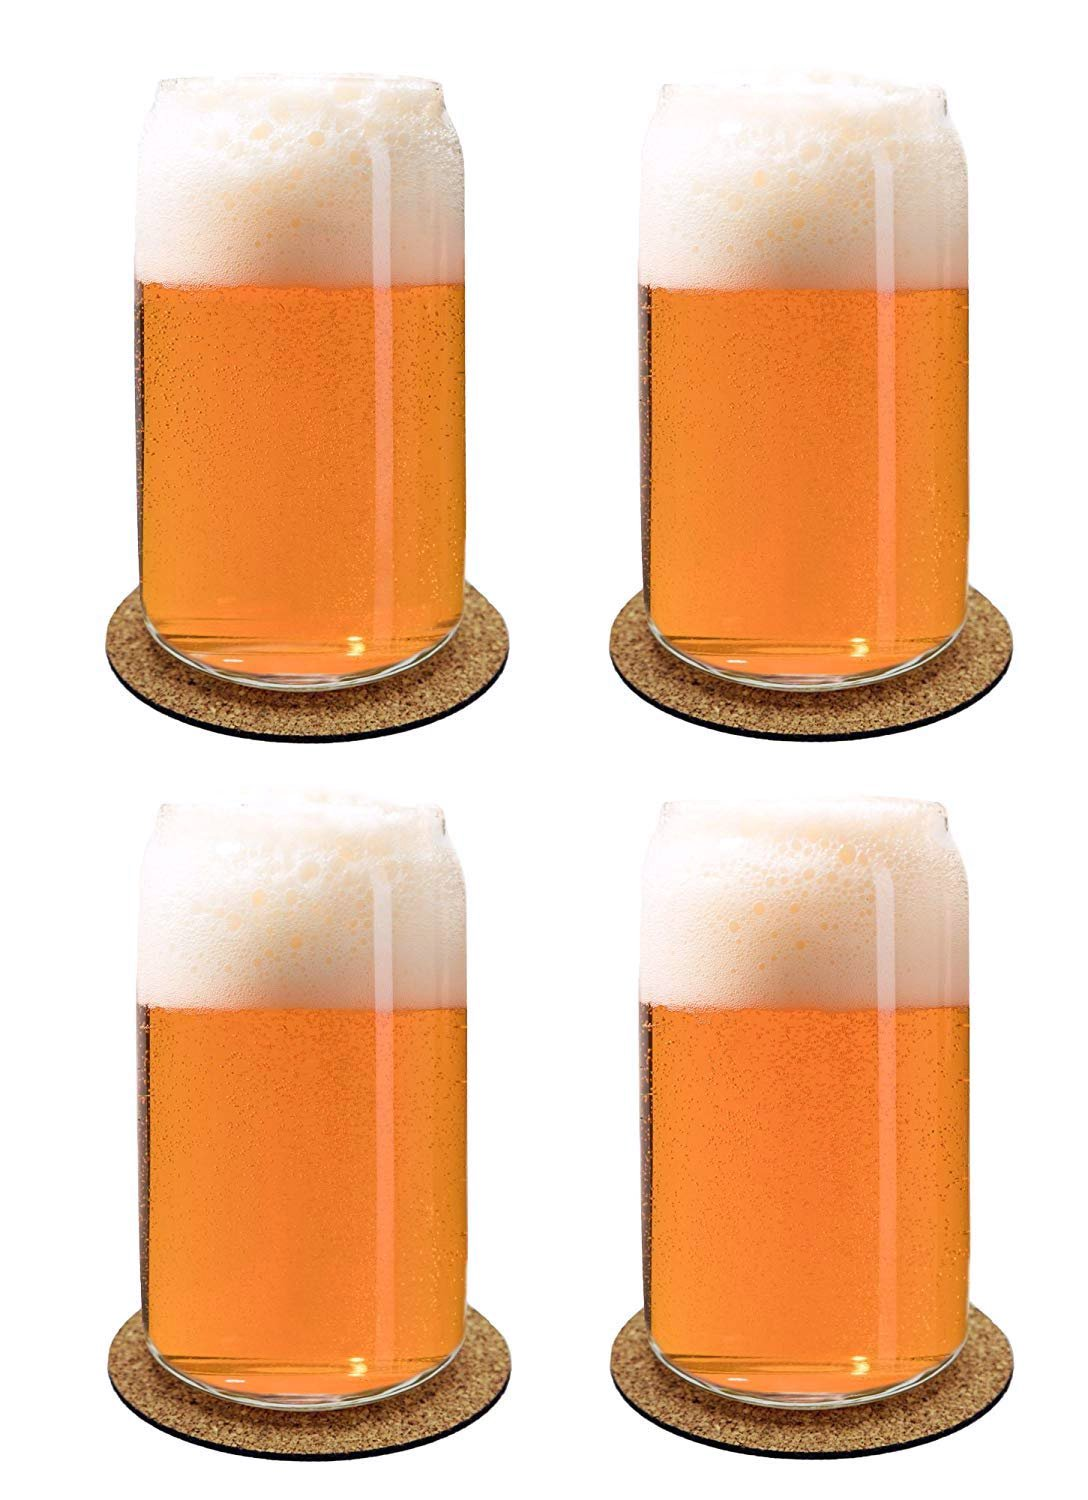 Ecodesign Drinkware Libbey Beer Glass Can Shaped 16 oz - Pint Beer Glasses 4 PACK w/coasters by Ecodesign Drinkware (Image #2)